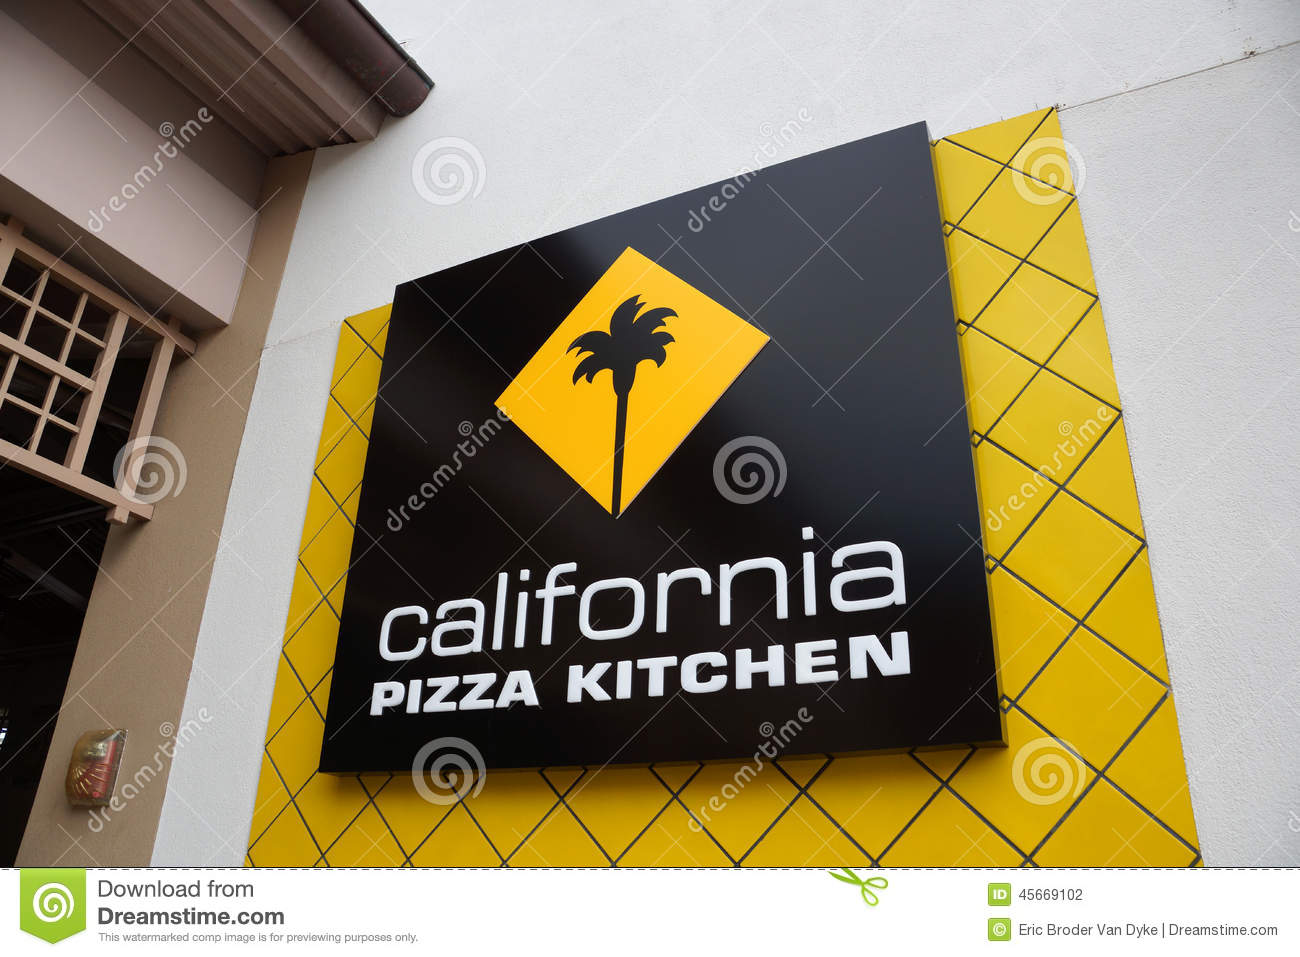 California Pizza Kitchen Logo Of Food Establishment At The Ala M